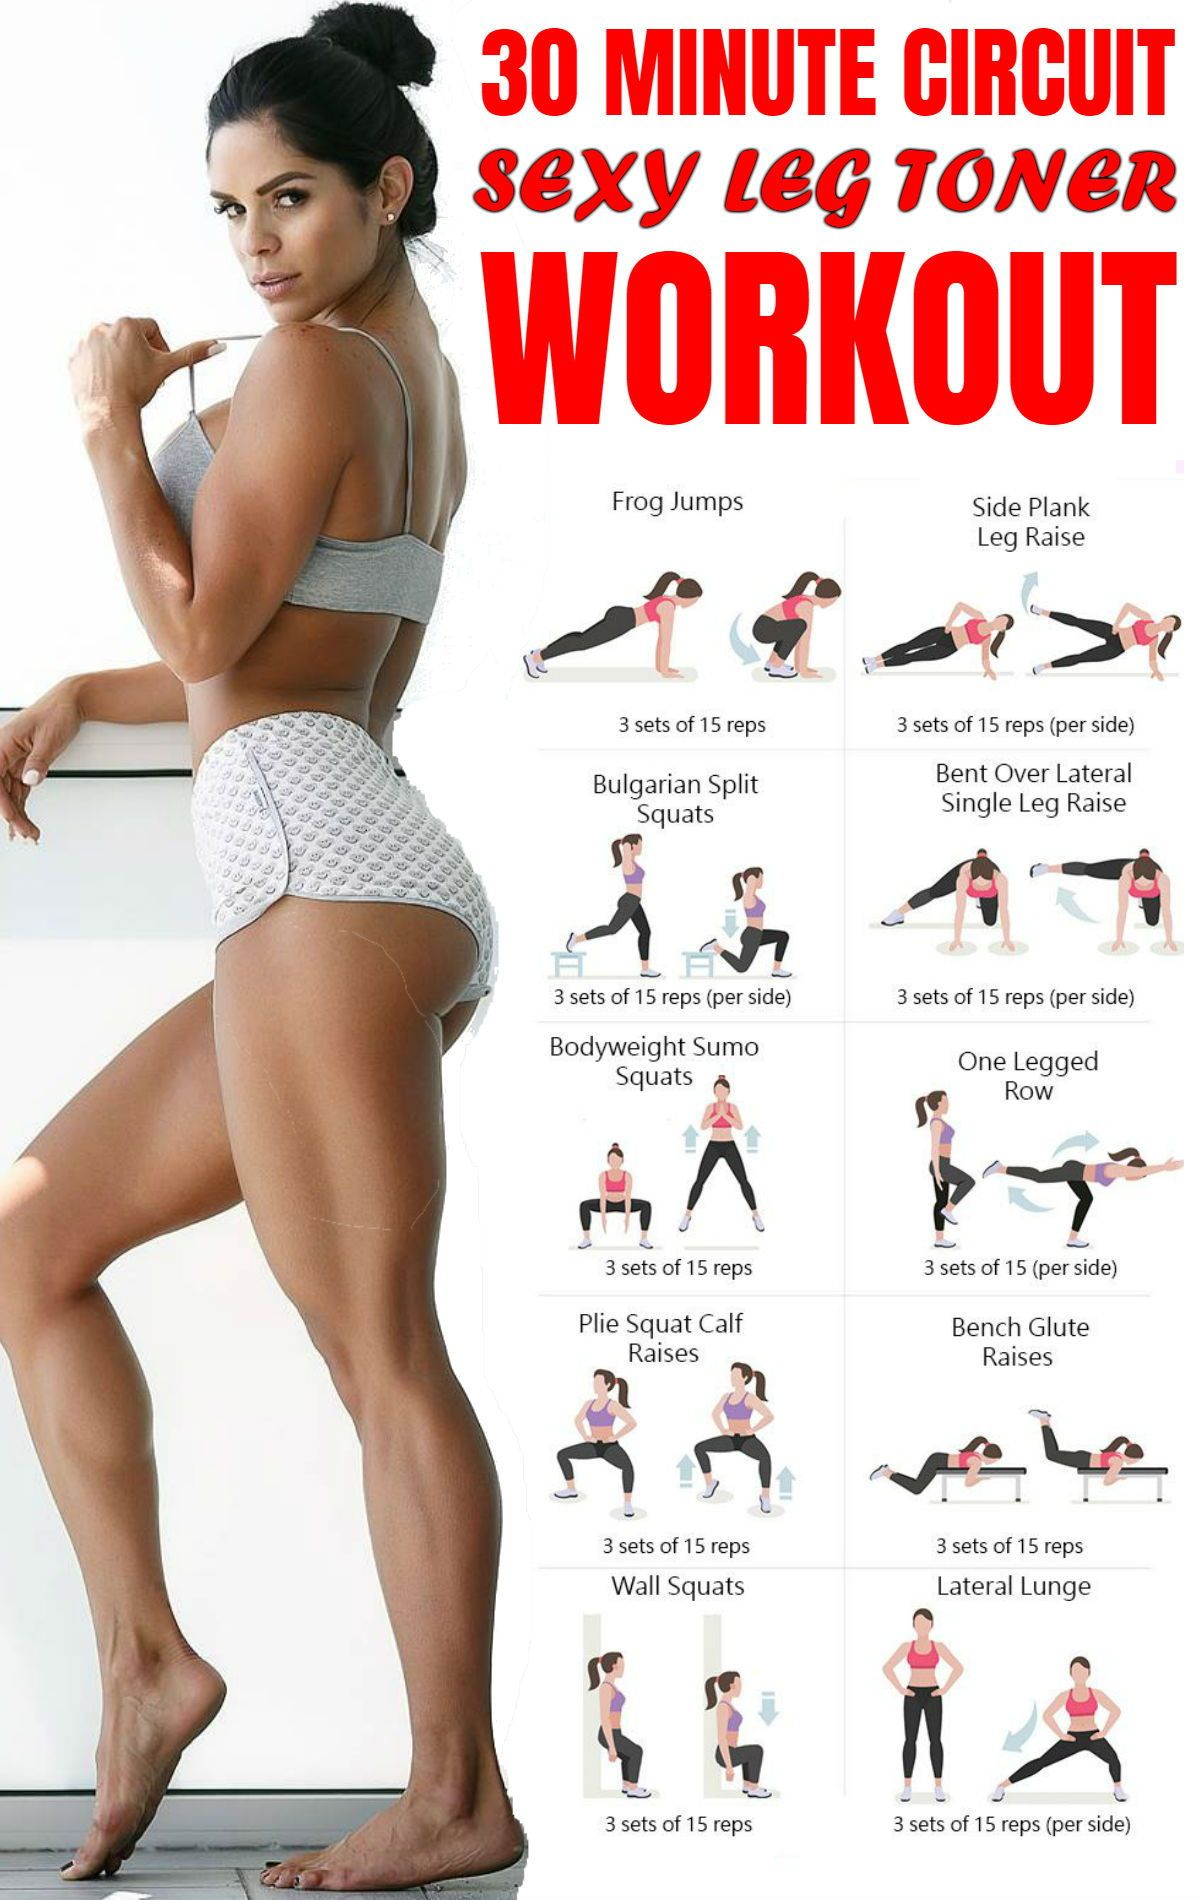 Workouts to Build a Round Booty and Toned Legs | Workout